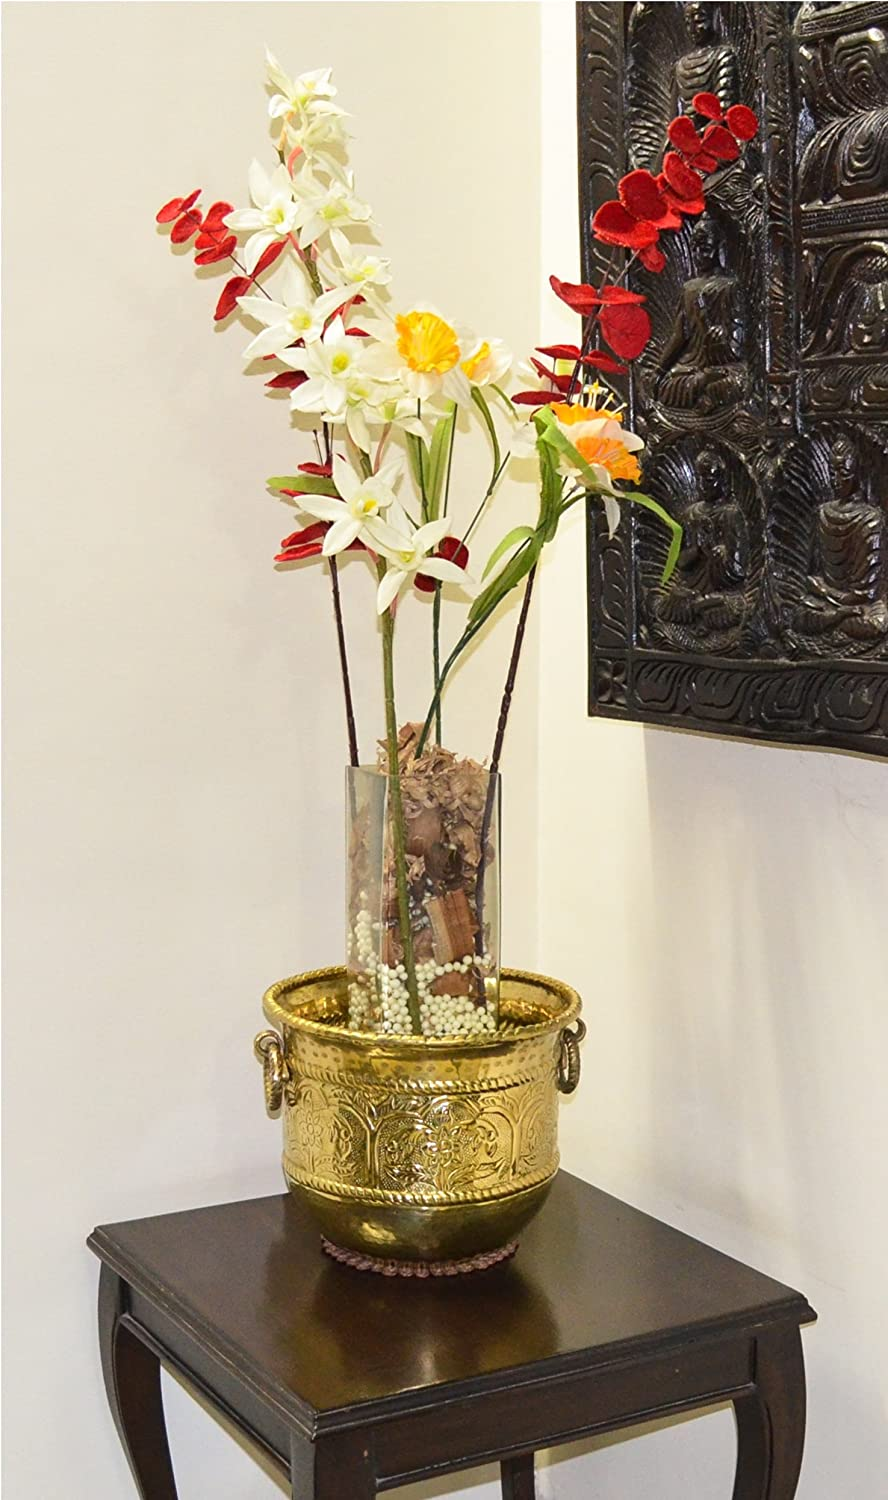 Size Dia-14 x Height-12 inch TANGERINE Handcrafted Decorative Brass Planter Pot with Lacquer Finish//Polish